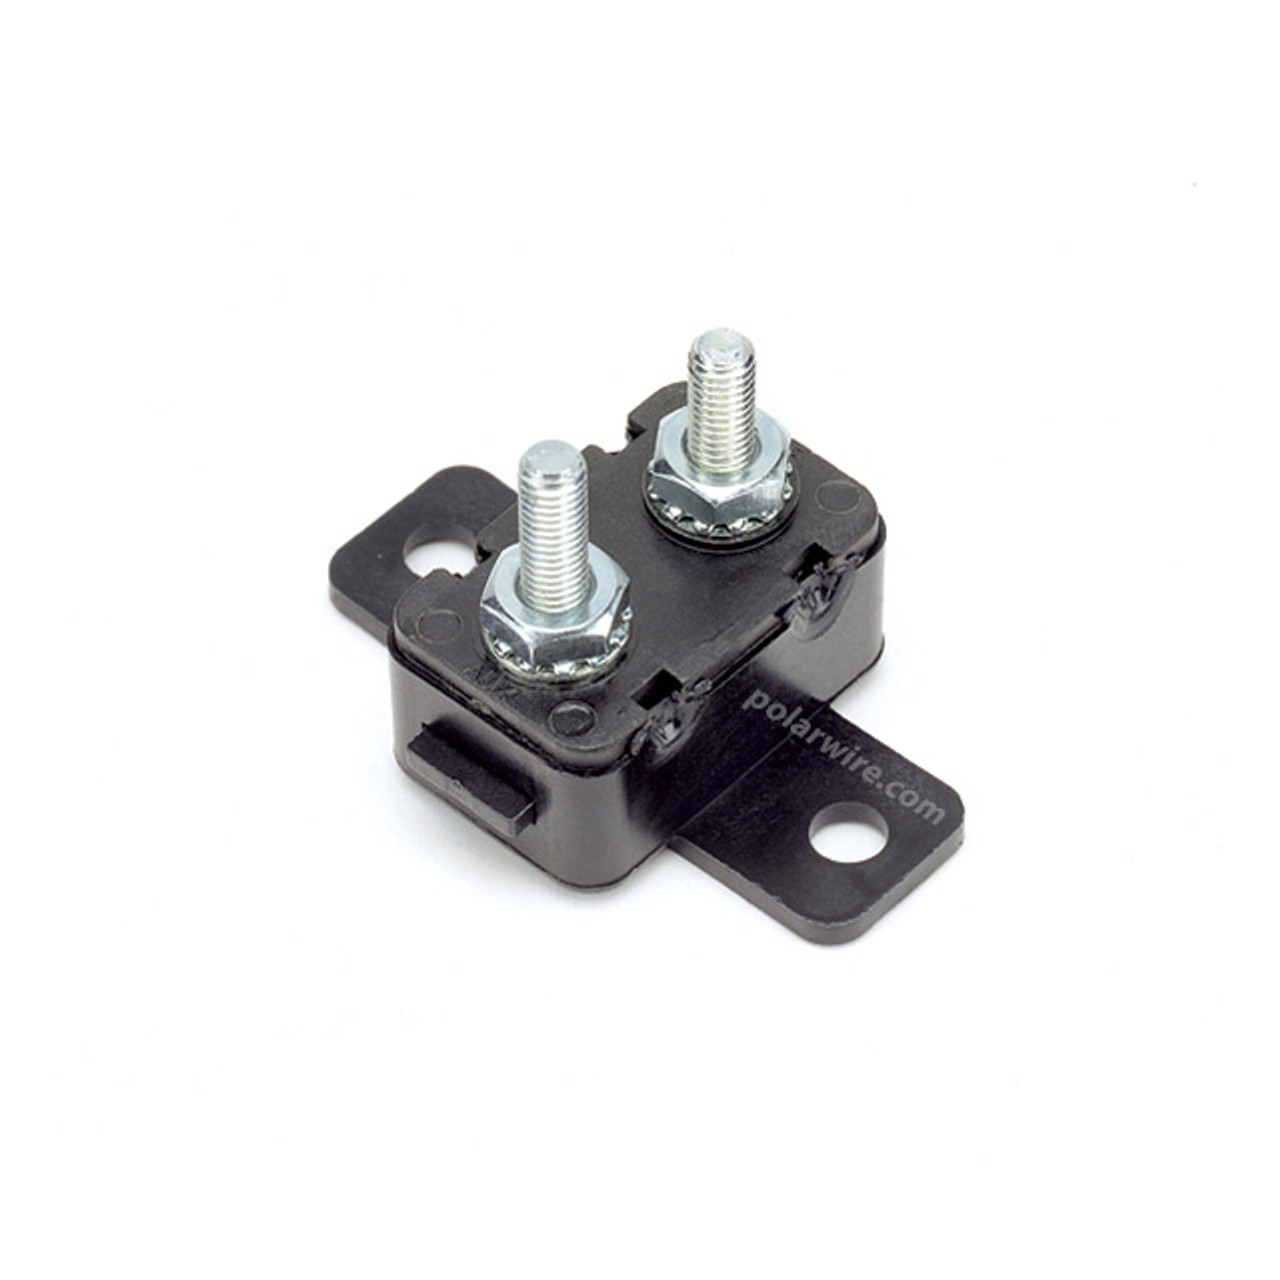 CIRCUIT BREAKER 12V 40AMP PUSH BUTTON RE-SET